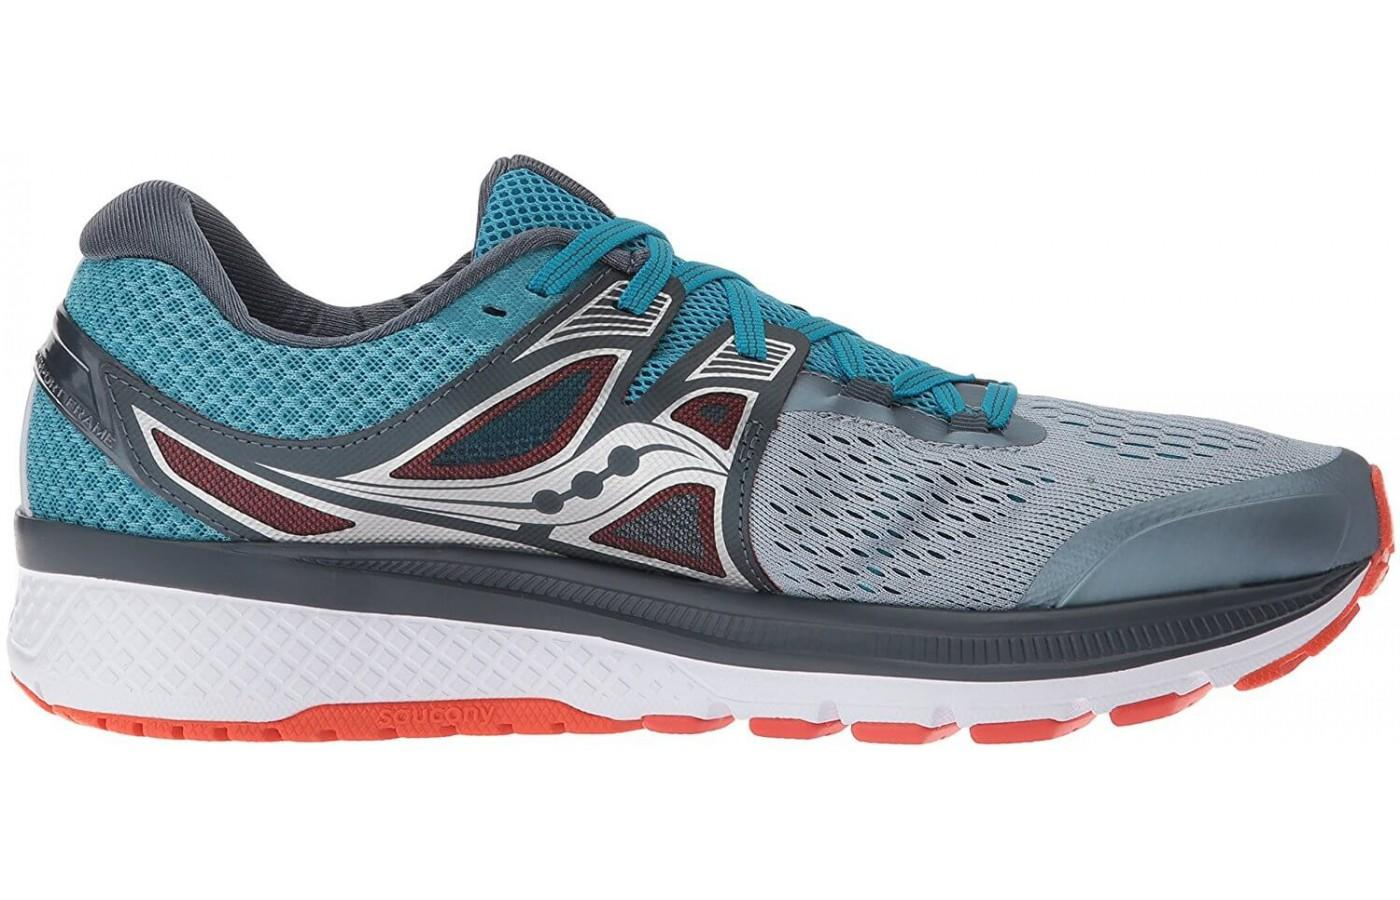 Full side view of the Saucony Triumph ISO 3 running shoes